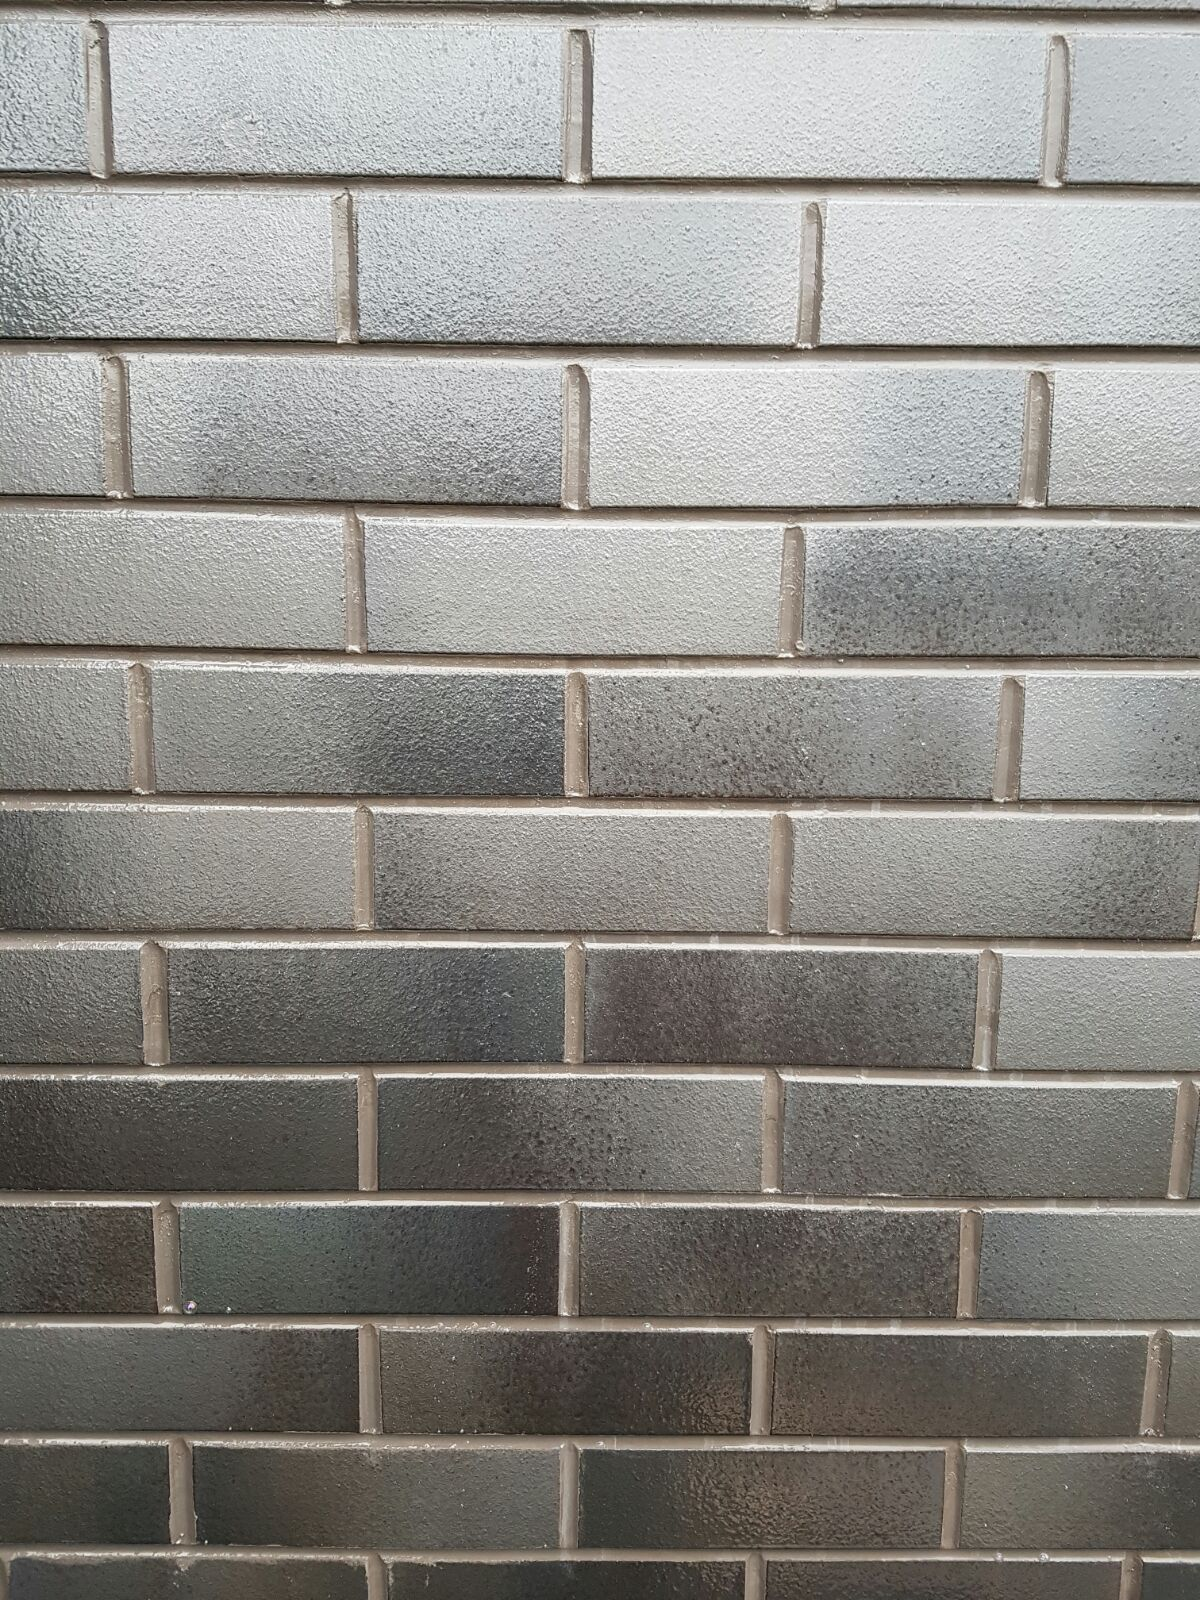 corium pointing with parex mortar